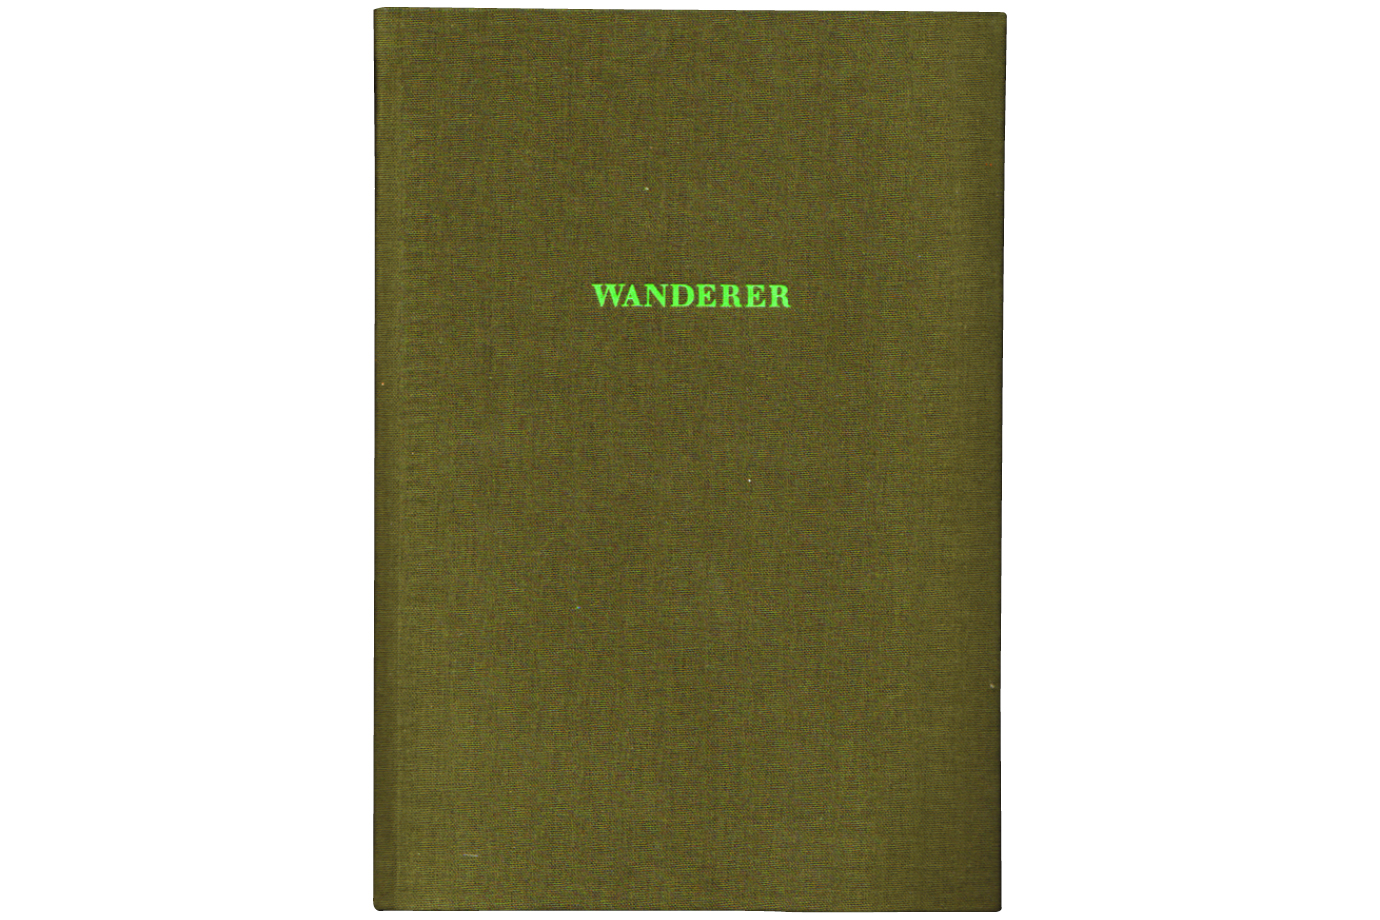 http://e-o-t.de/wordpress/wp-content/uploads/2017/06/2009_eot-Wanderer-Book-0.jpg